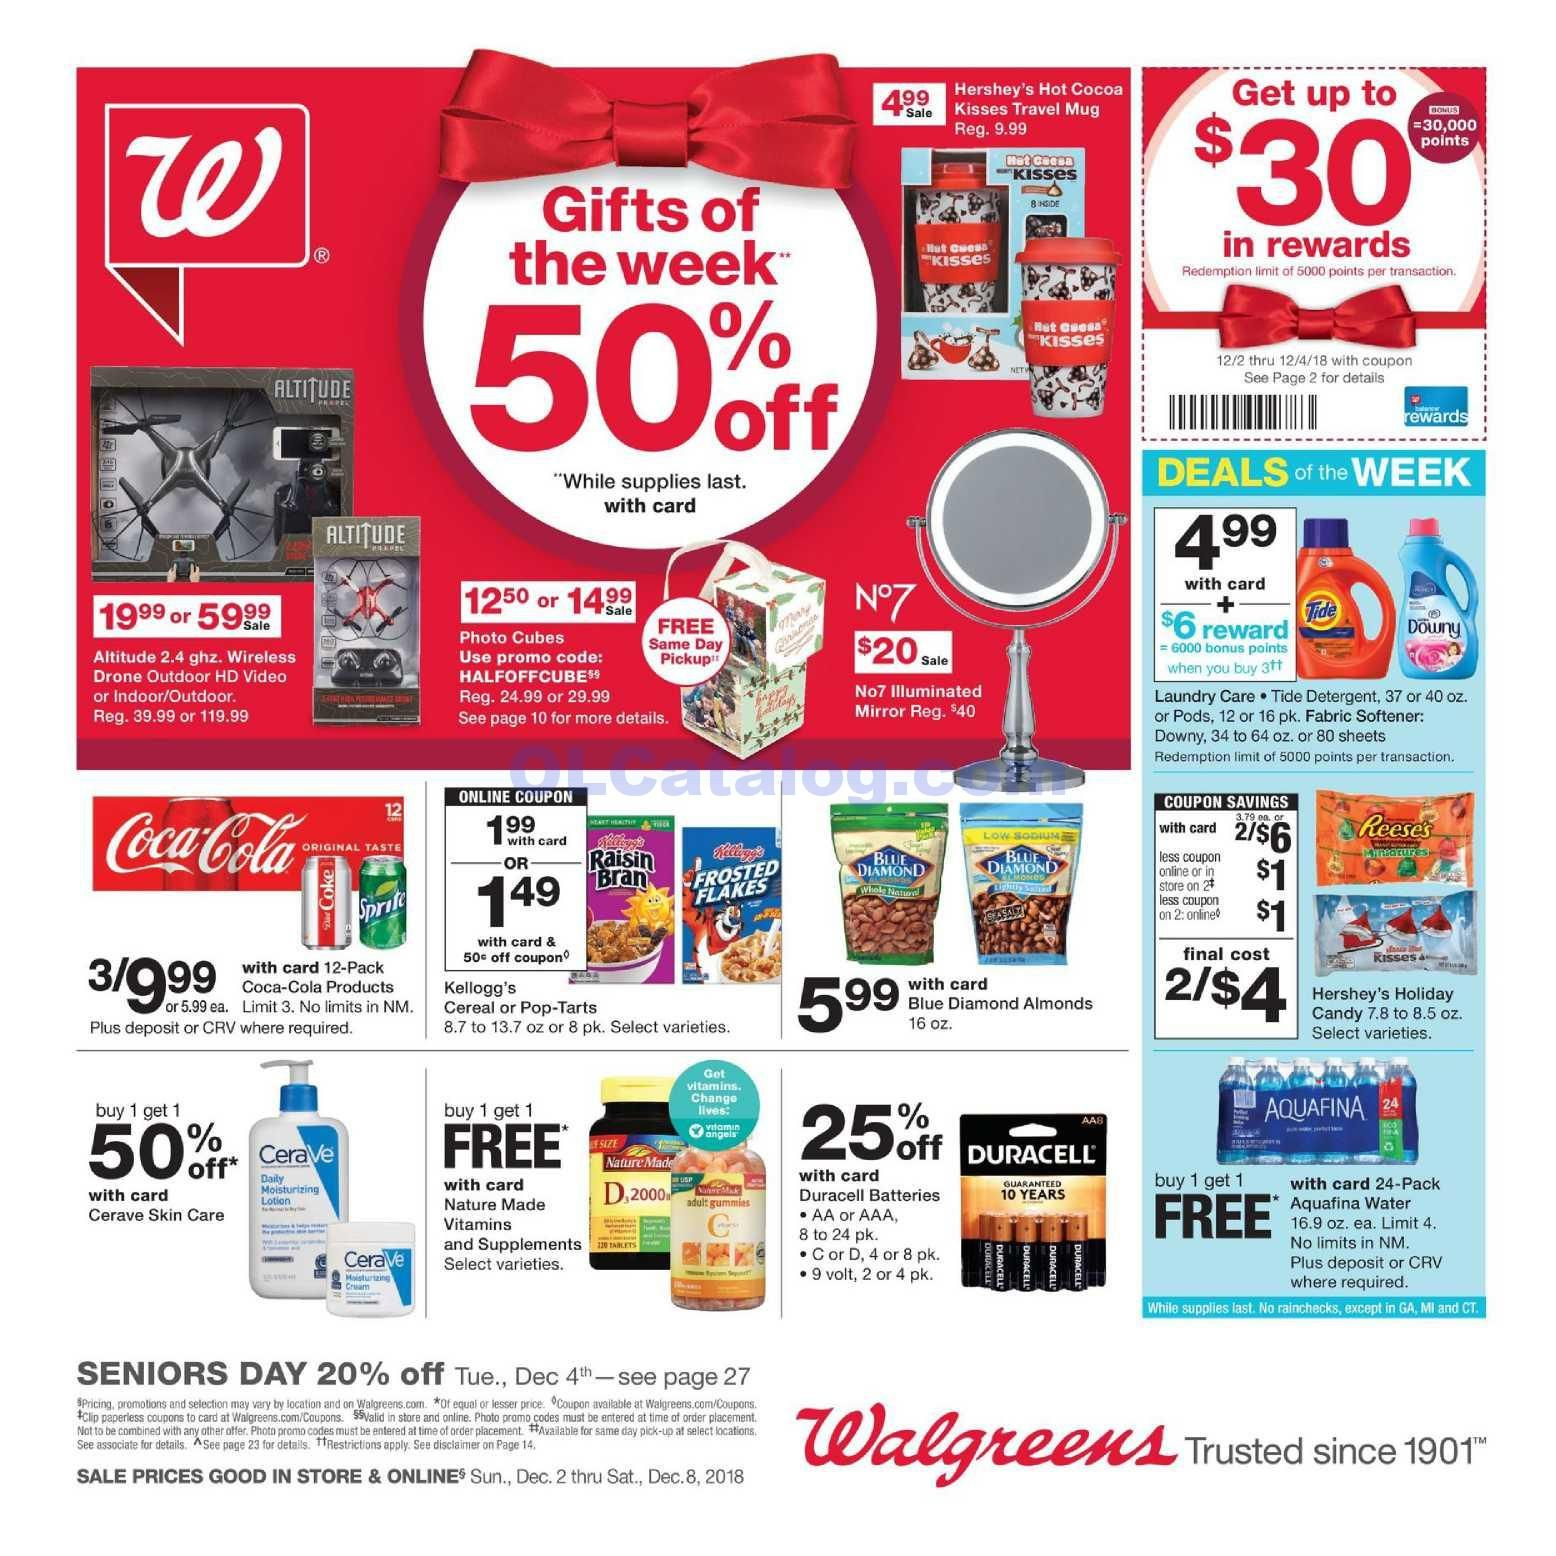 Walgreens Weekly Ad December 2 8, 2018. View the Latest